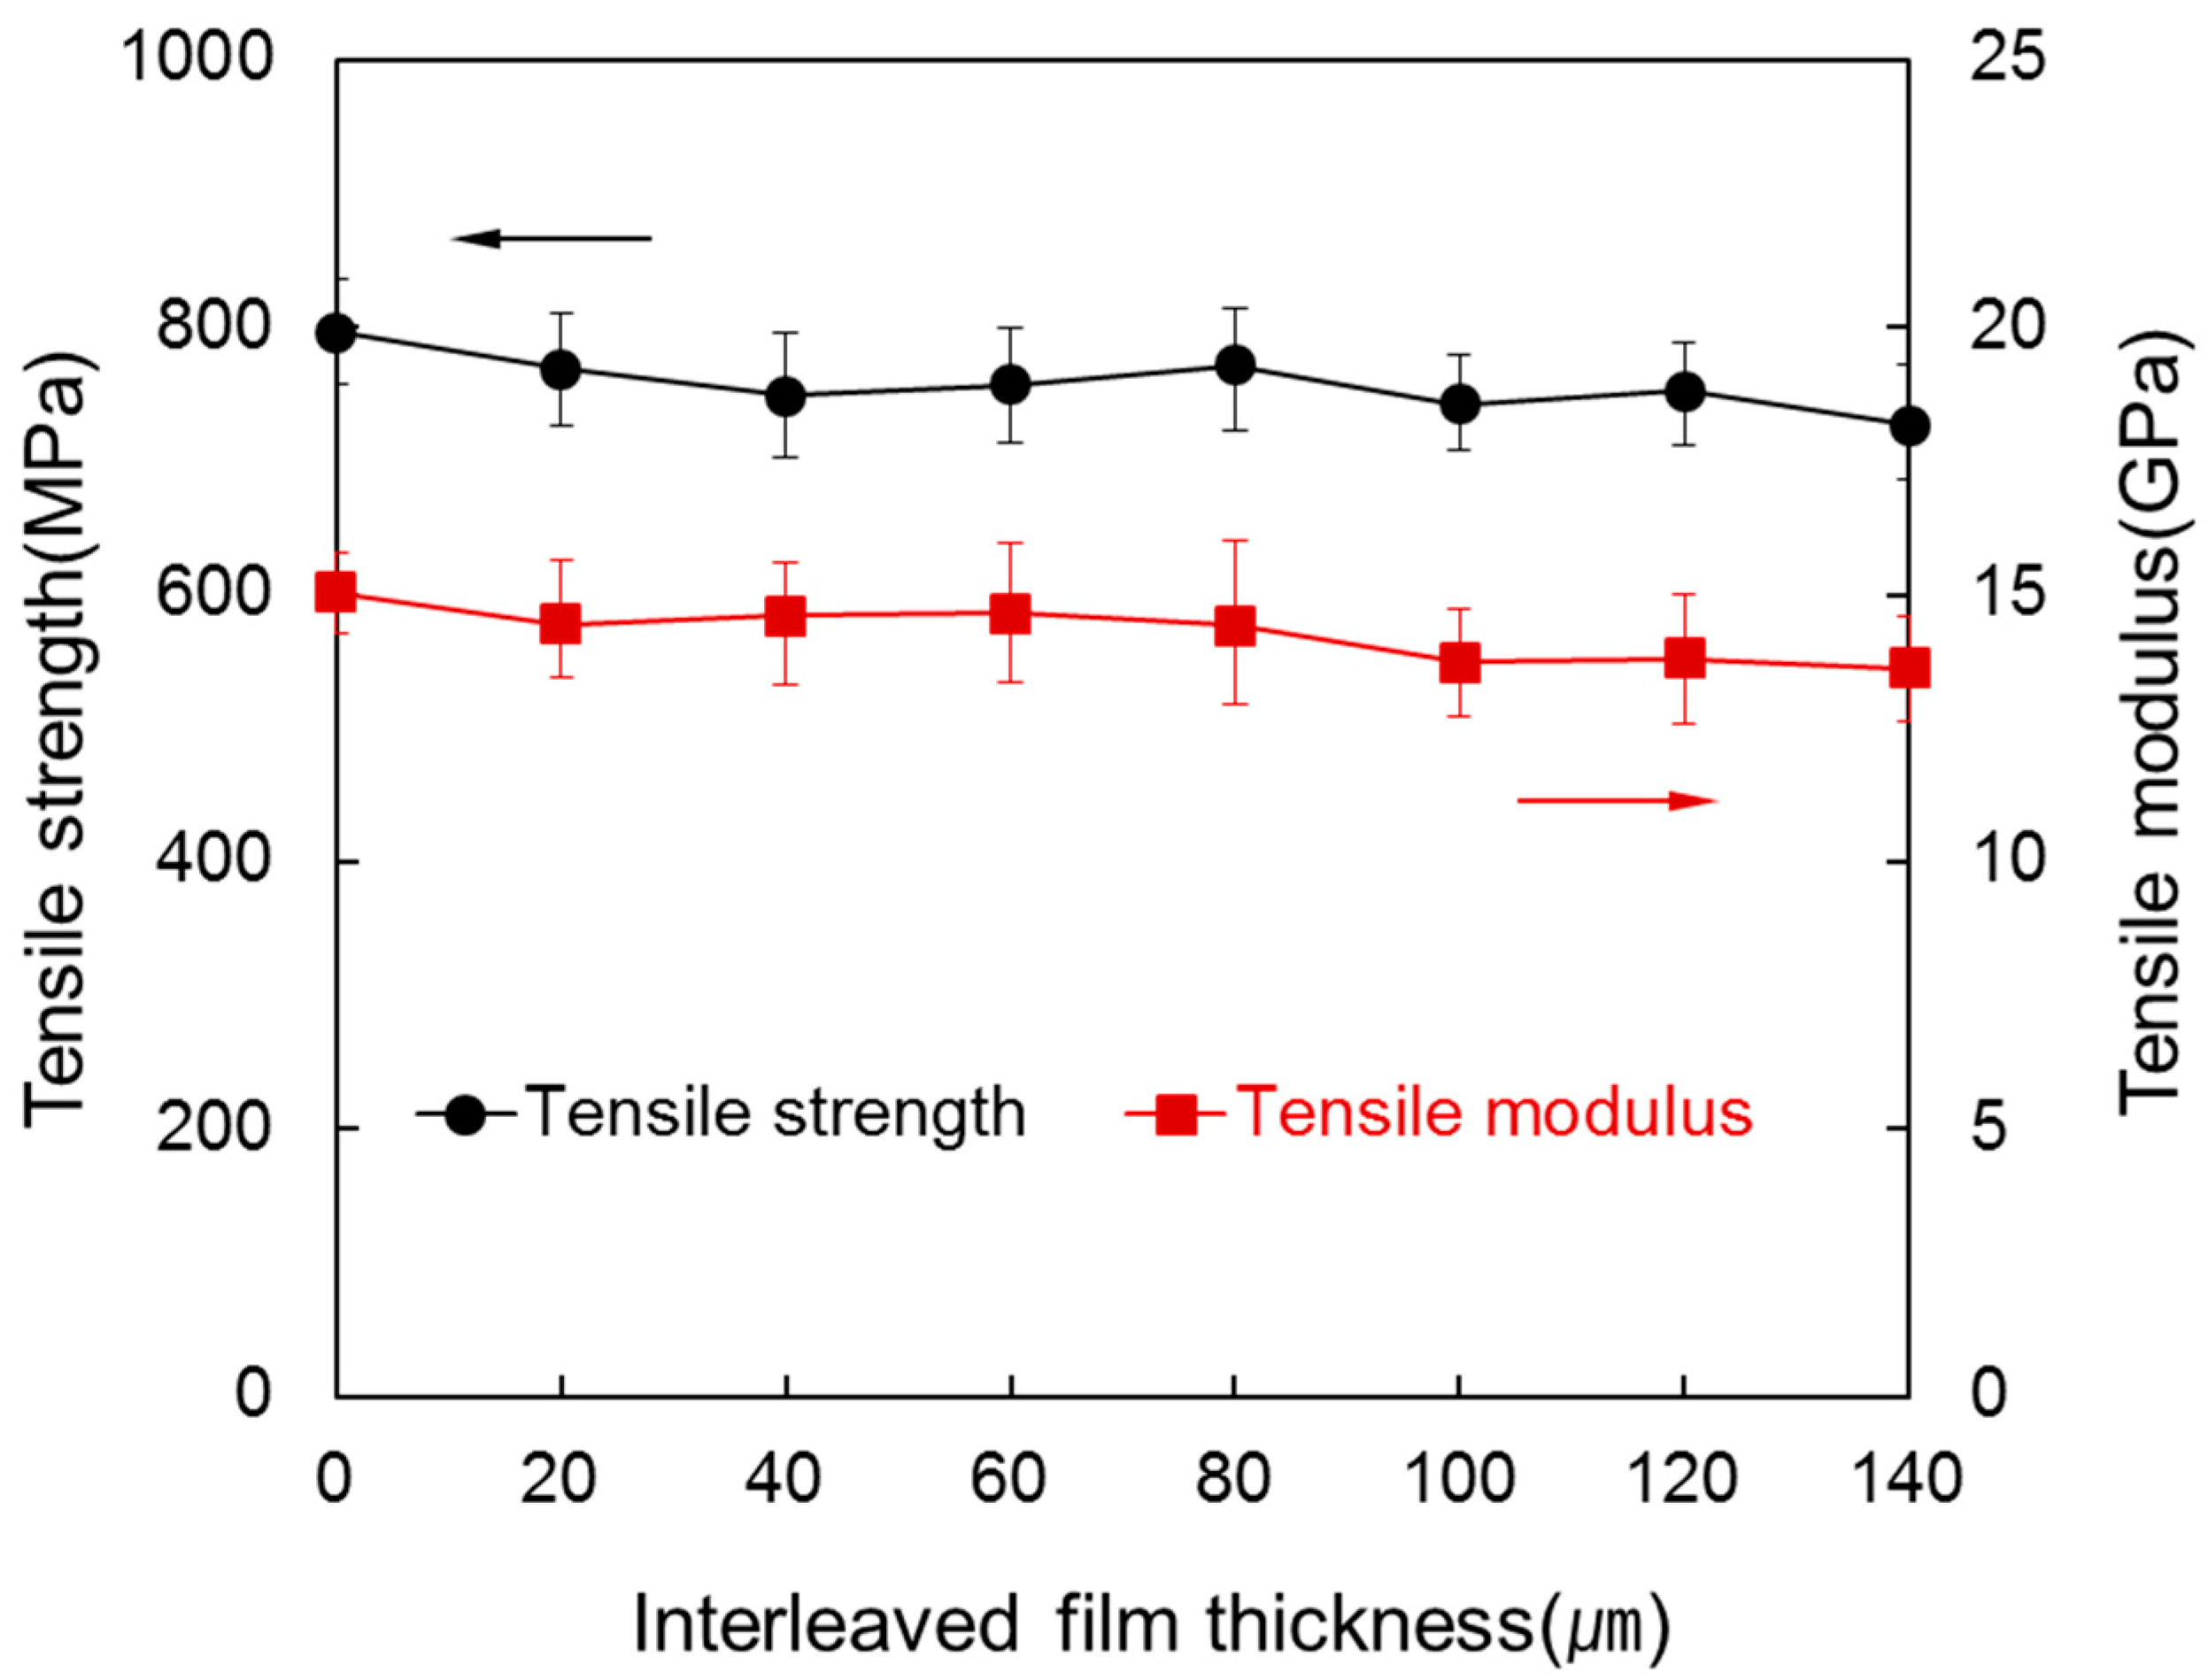 Materials | Free Full-Text | Influence of Interleaved Films on the